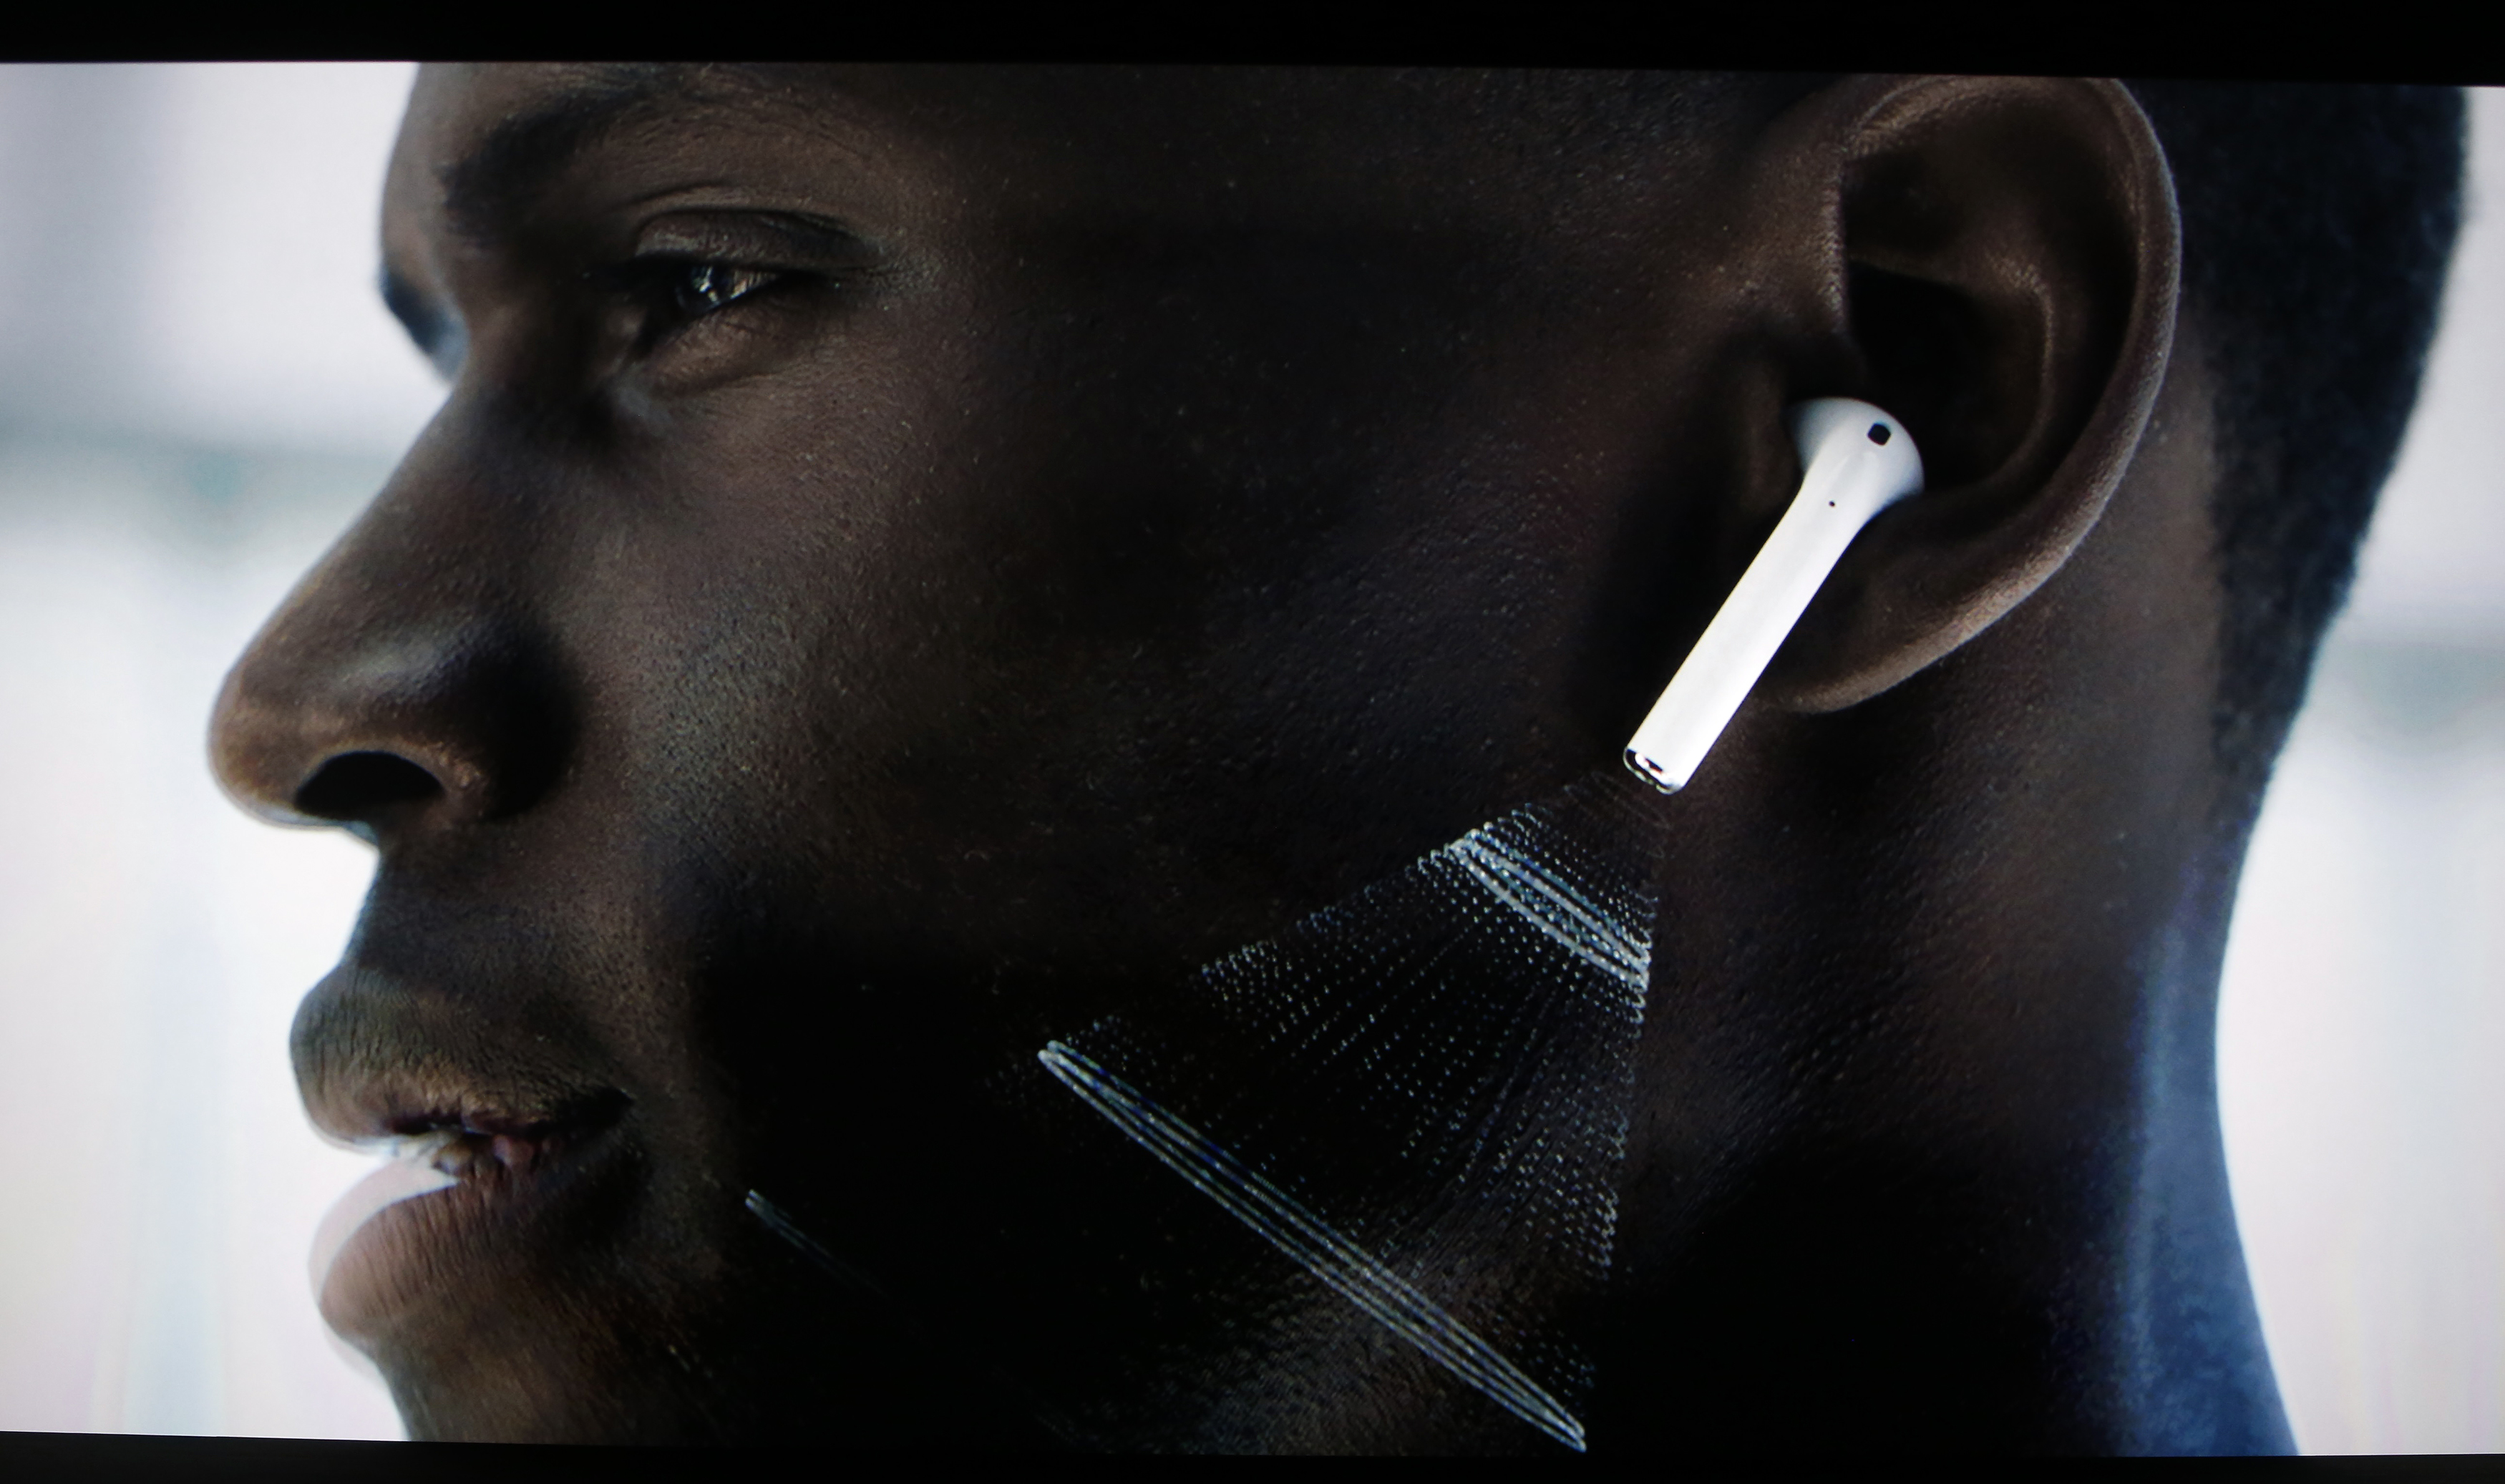 Video screen image of Apple AirPods during a media event in San Francisco